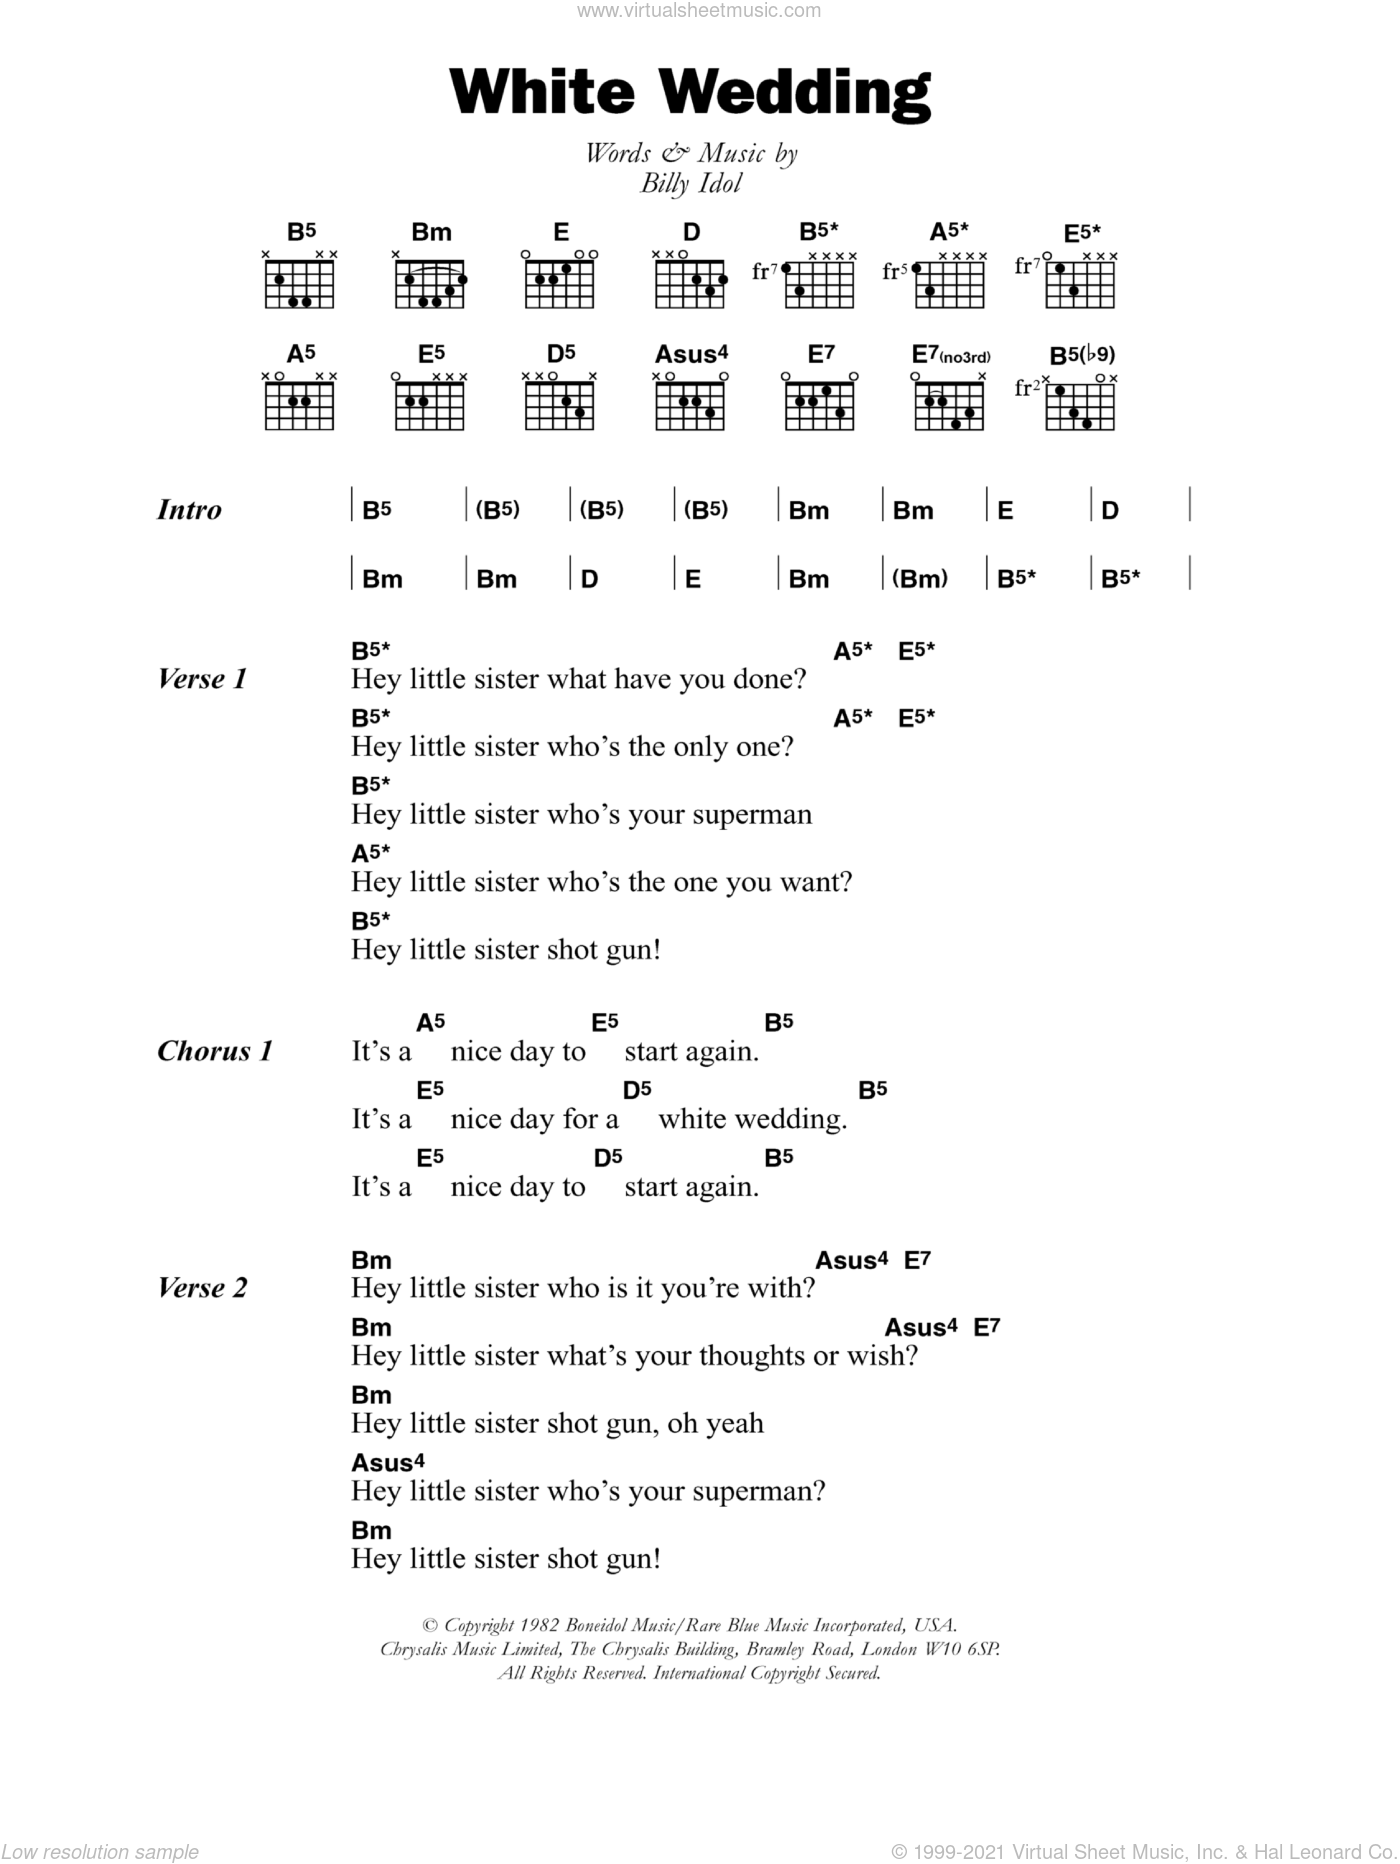 White Wedding sheet music for guitar (chords) by Billy Idol